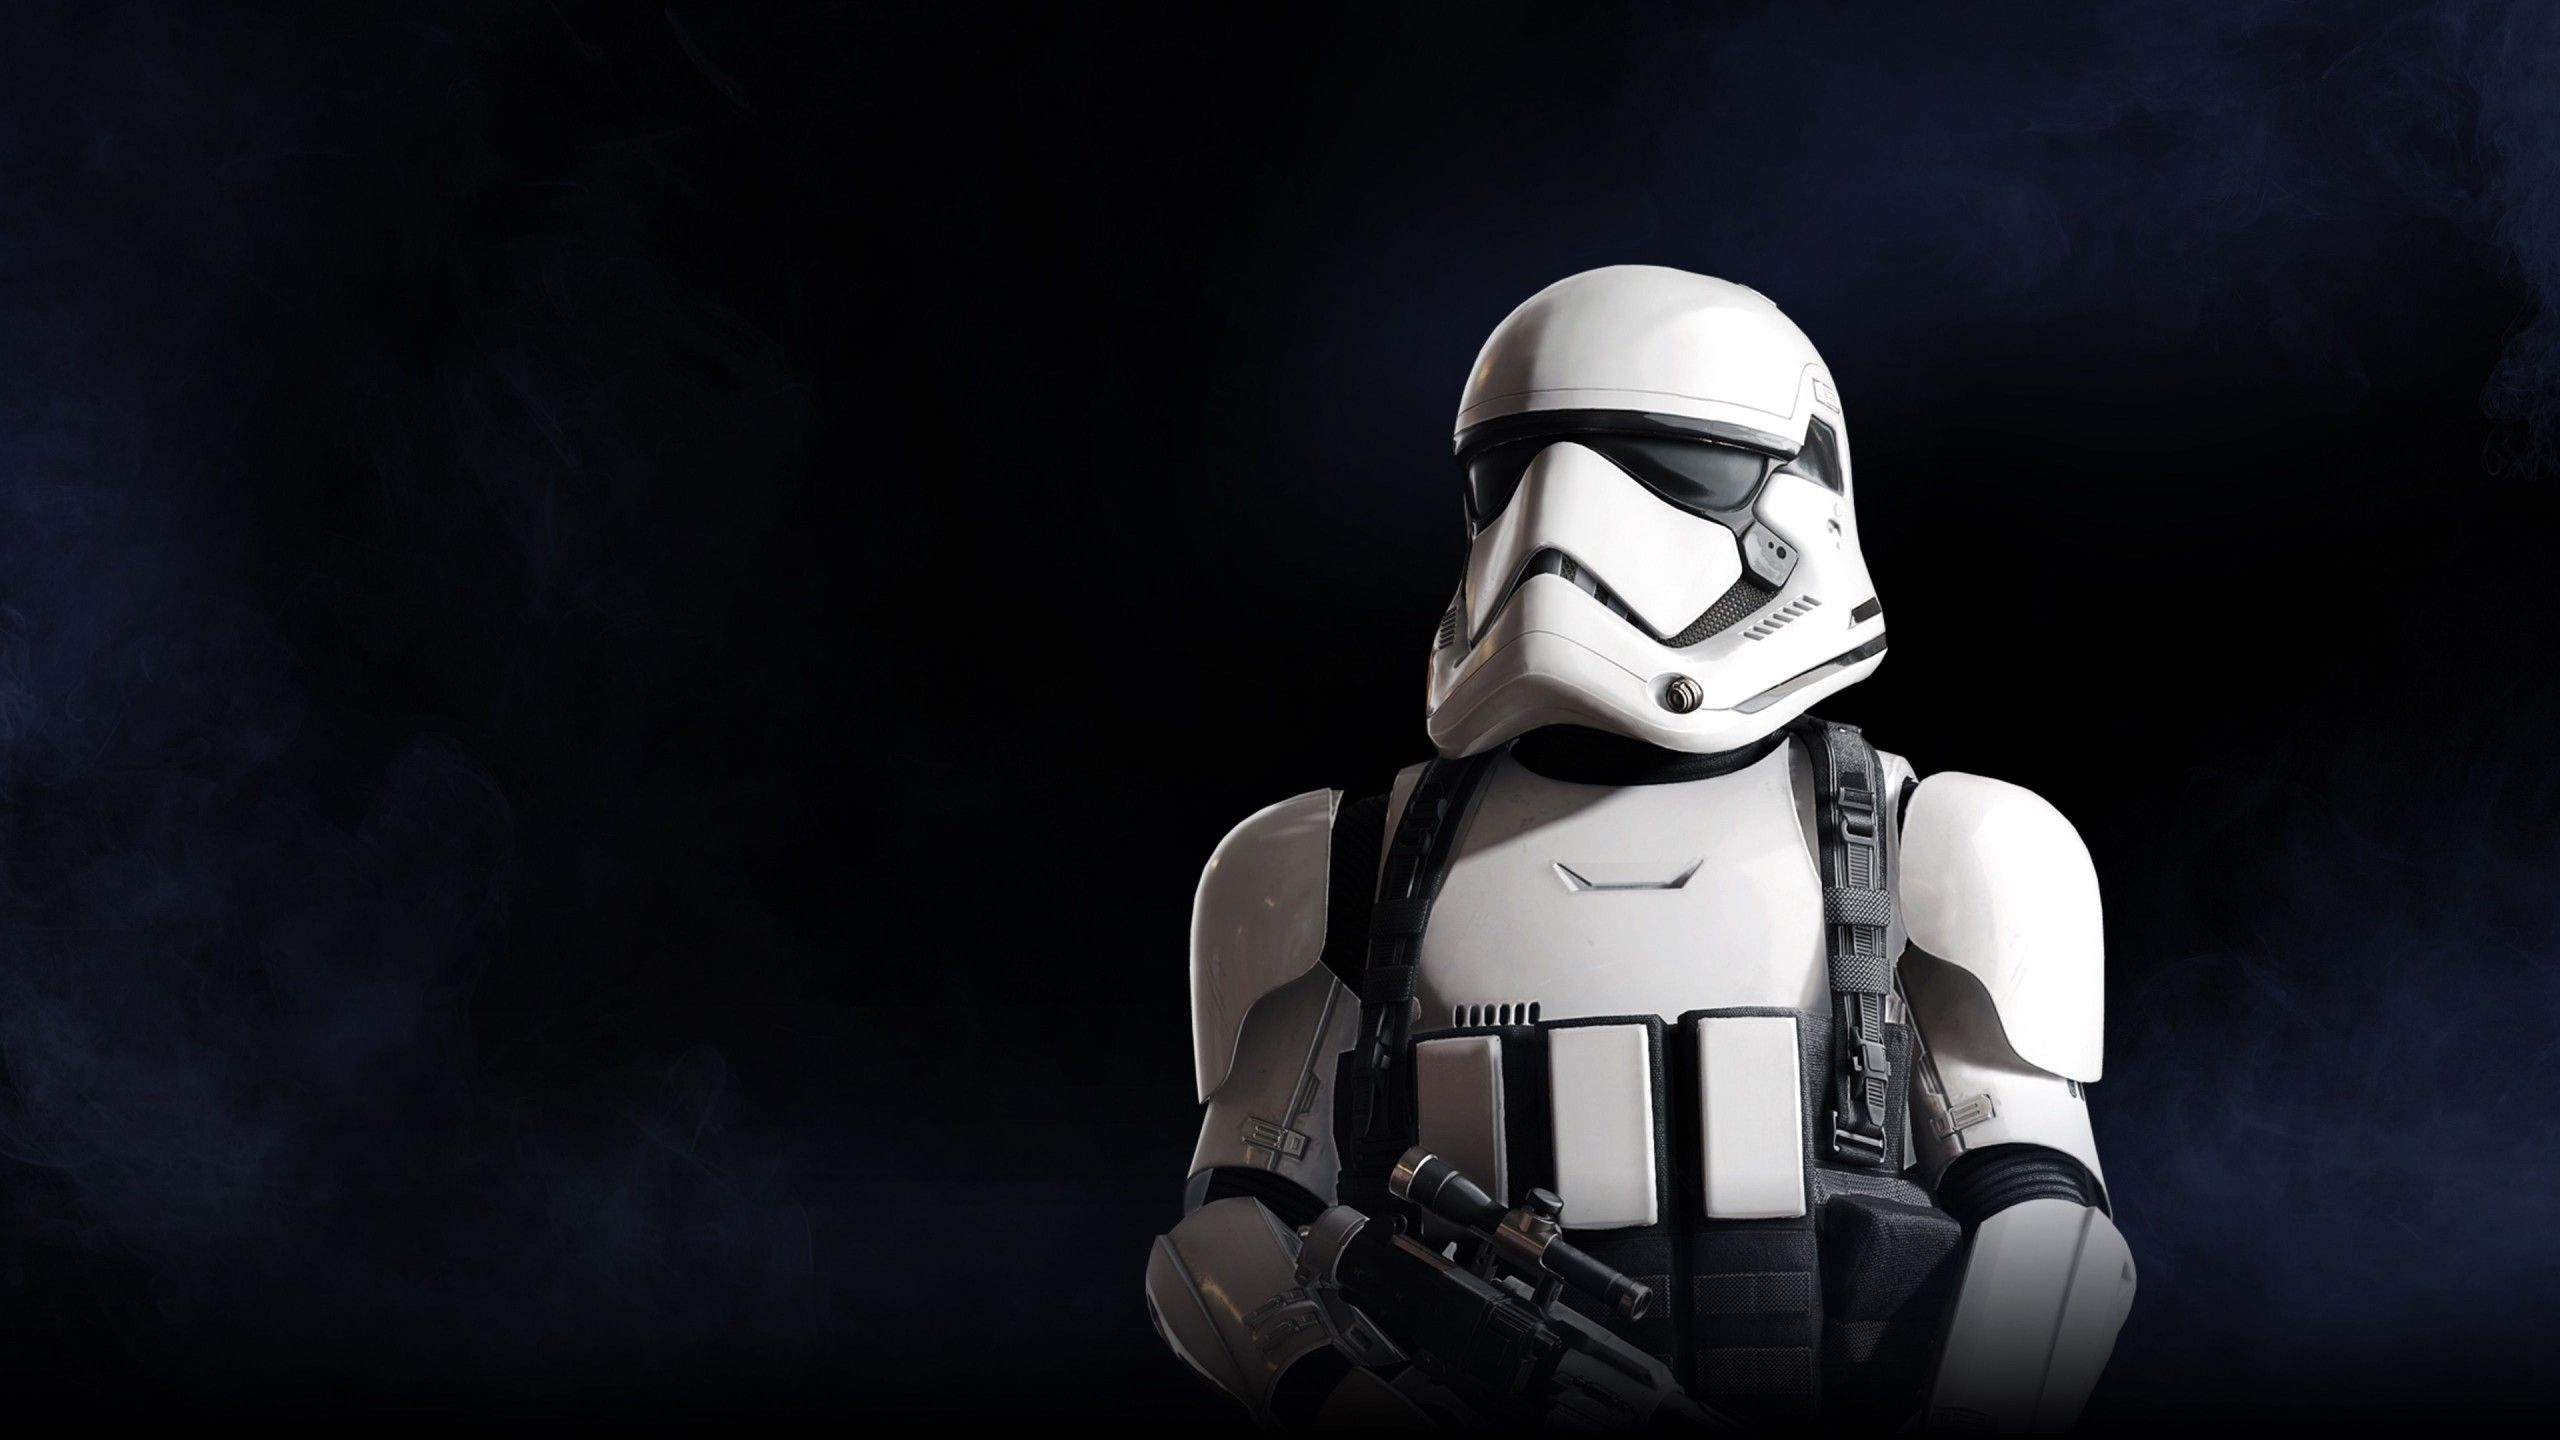 Best Of Wallpaper Stormtrooper Star Wars Battlefront Ii Heavy Star Wars Battlefront Dark Side Star Wars Star Wars Art